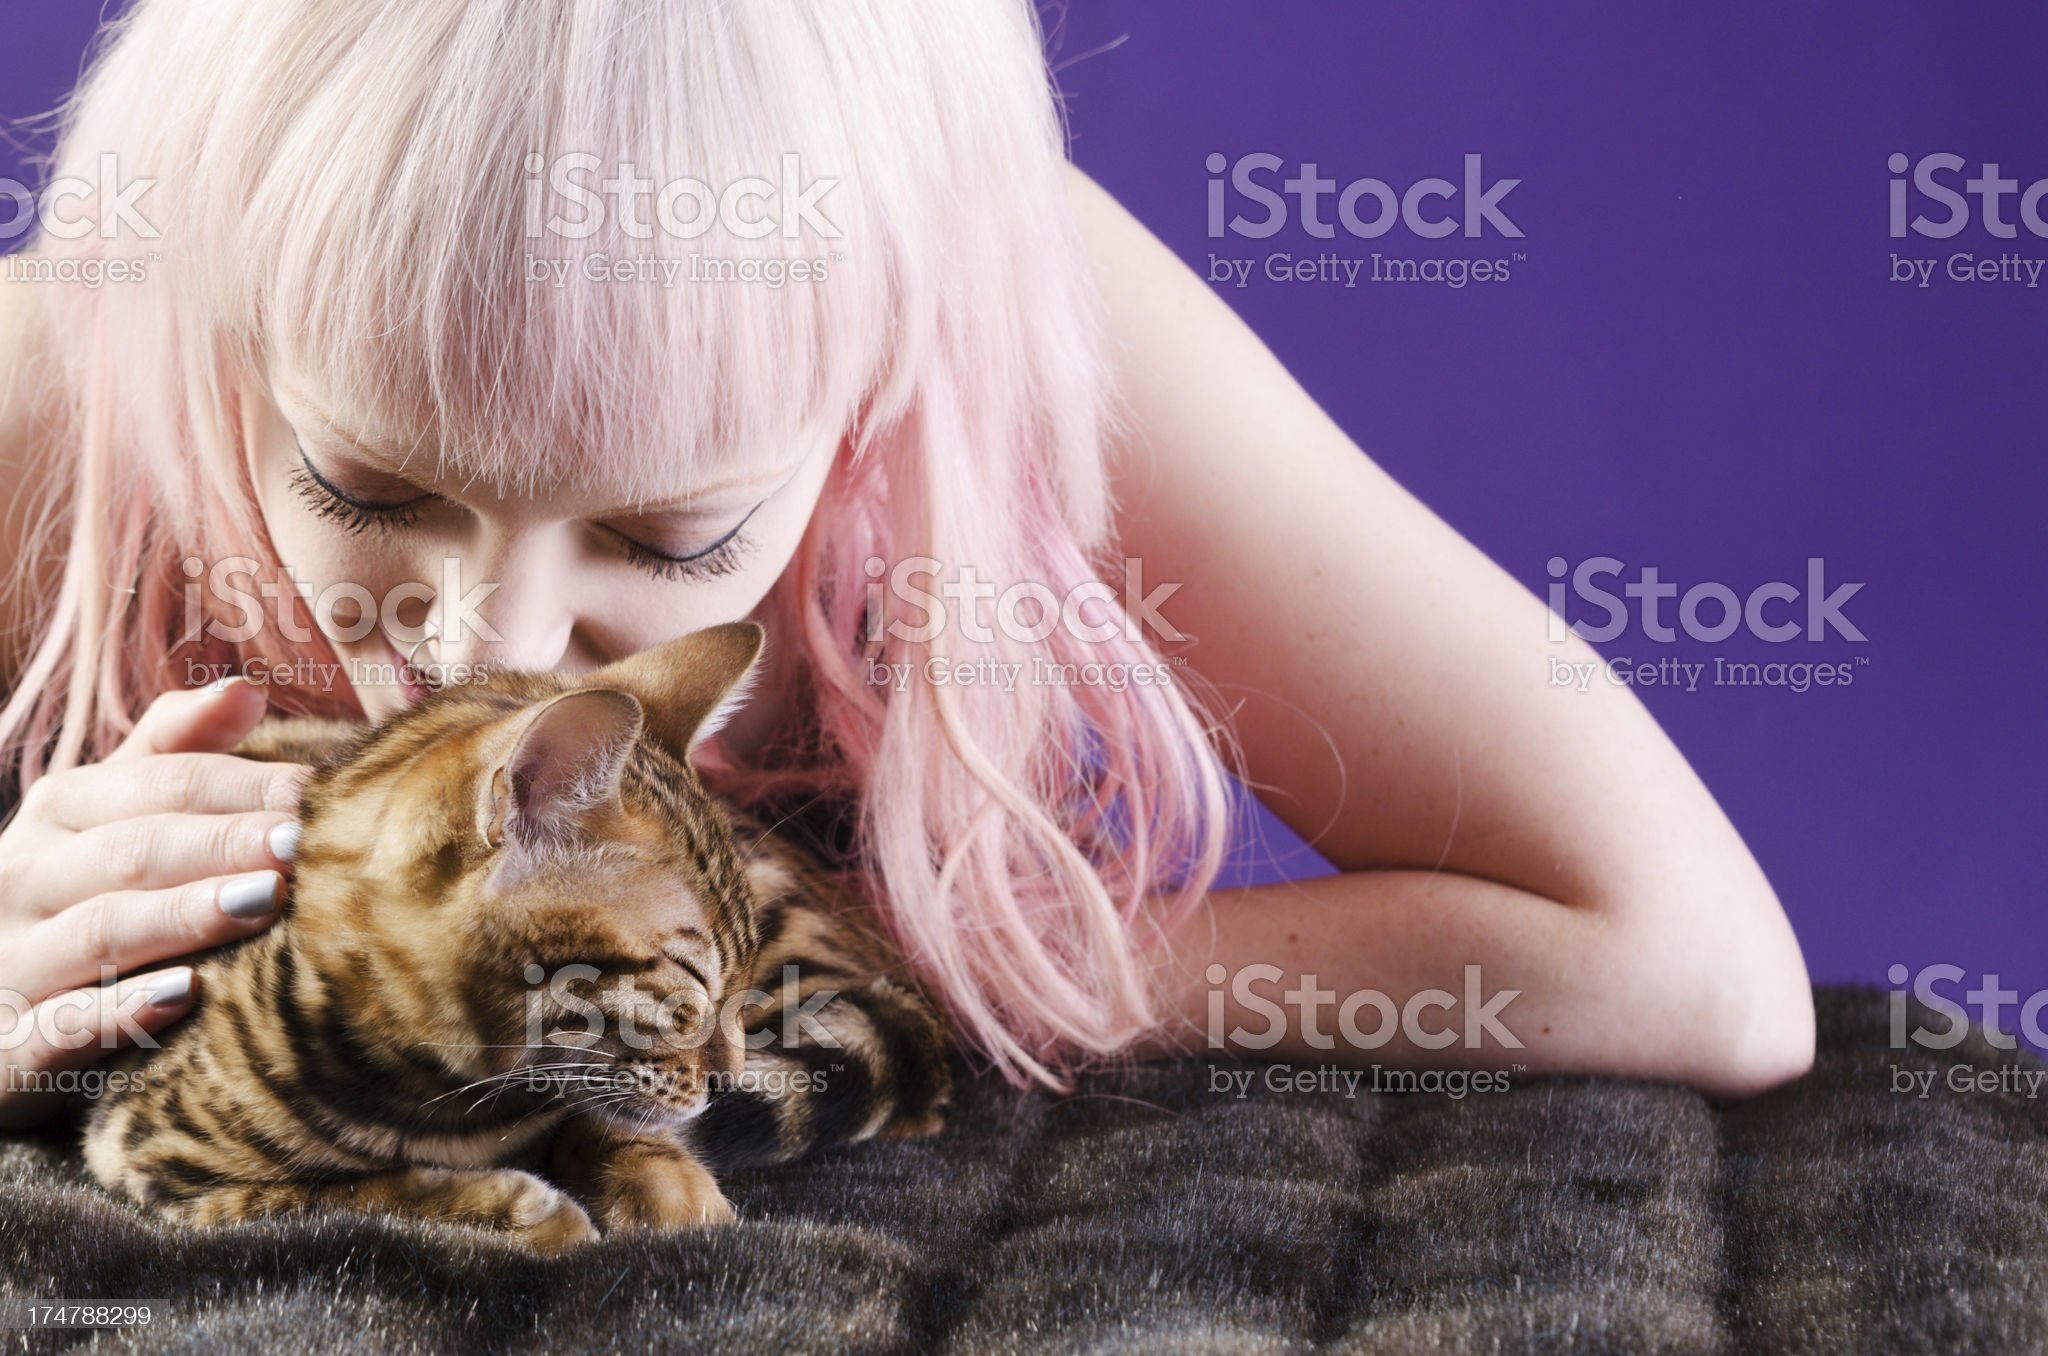 Pink haired young woman nose touching sleeping kitten royalty-free stock photo